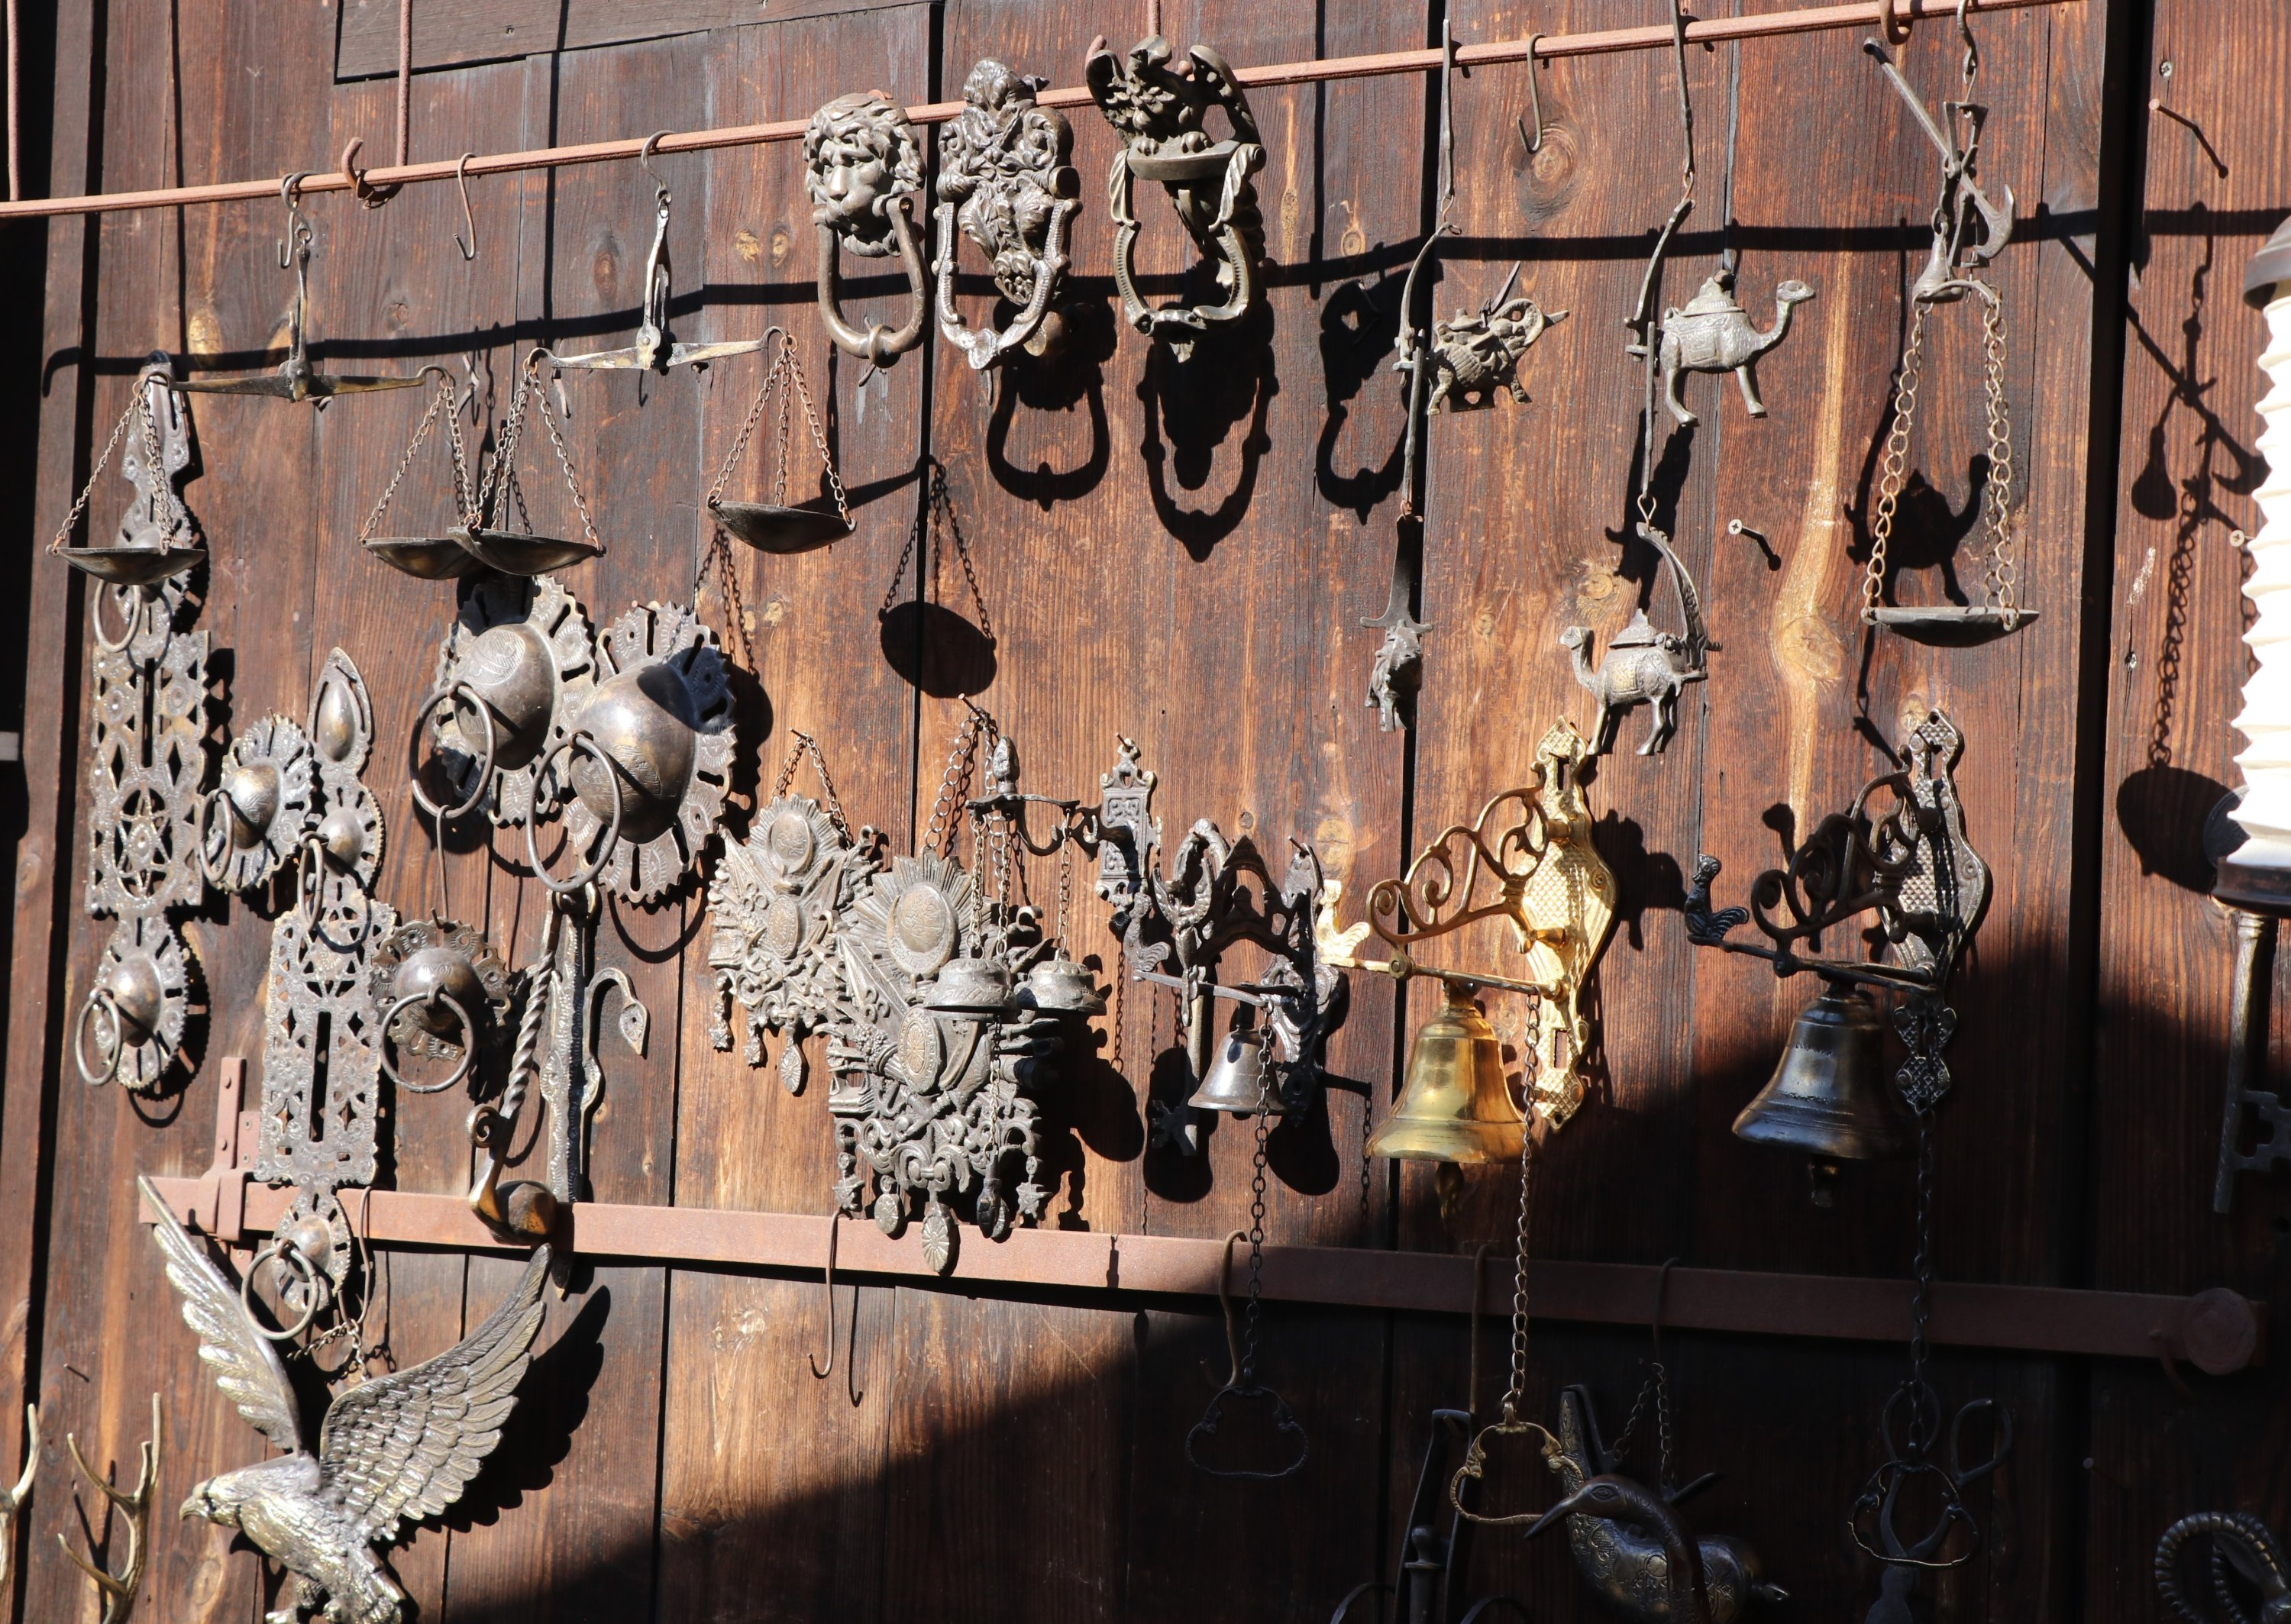 Various metal work are on display at one of the workshops of Blacksmiths Market in Safranbolu district of Karabük, northern Turkey, Feb. 3, 2021. (IHA Photo)